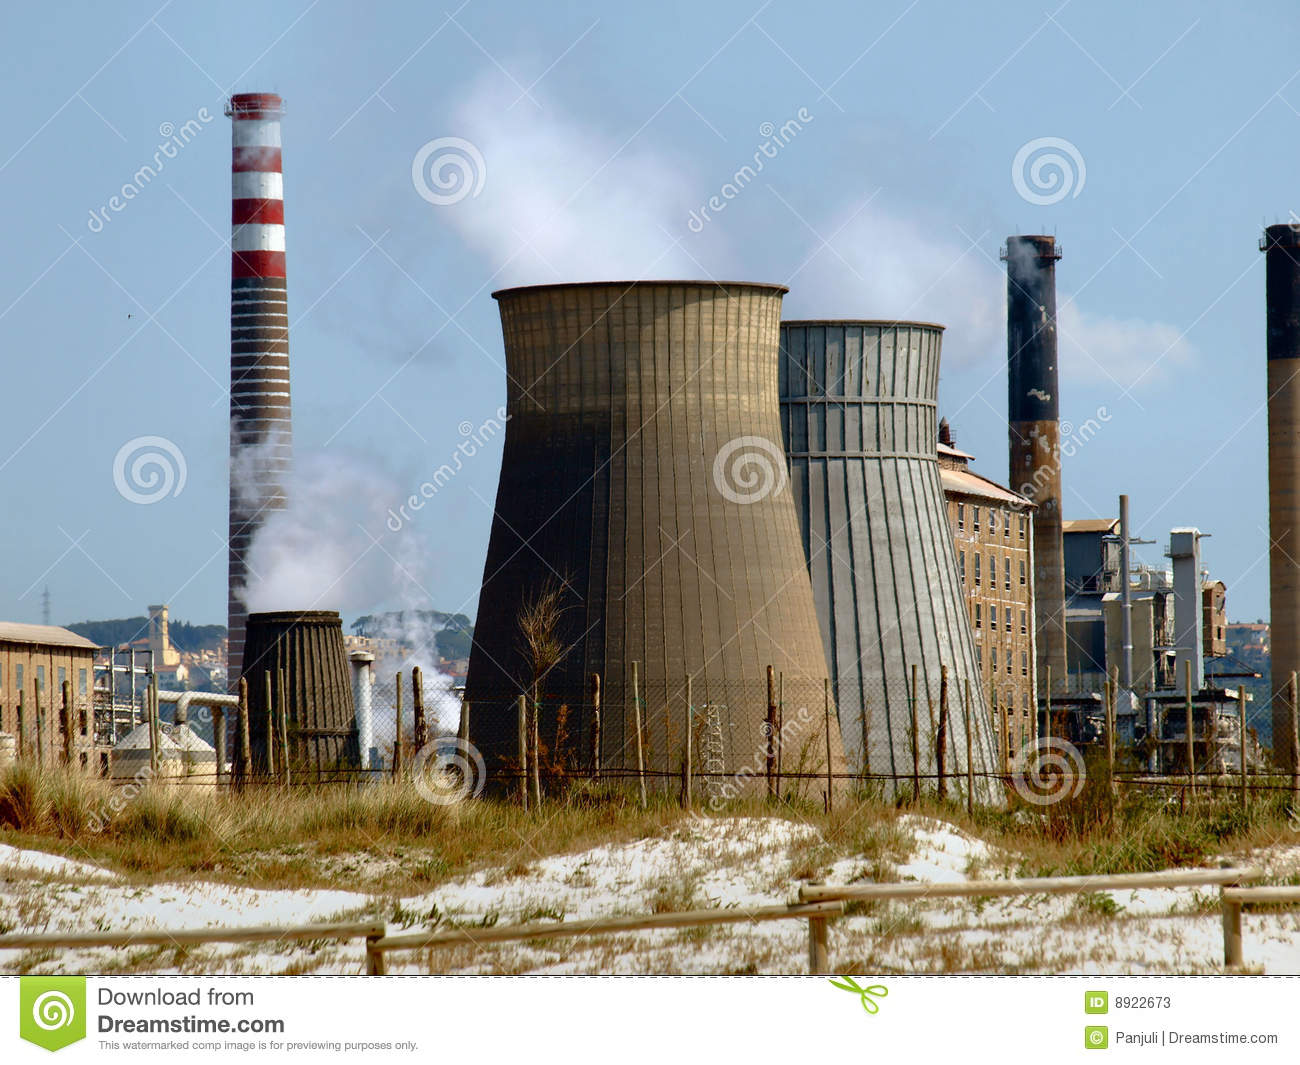 Old Industry Stock Photos - Image: 8922673